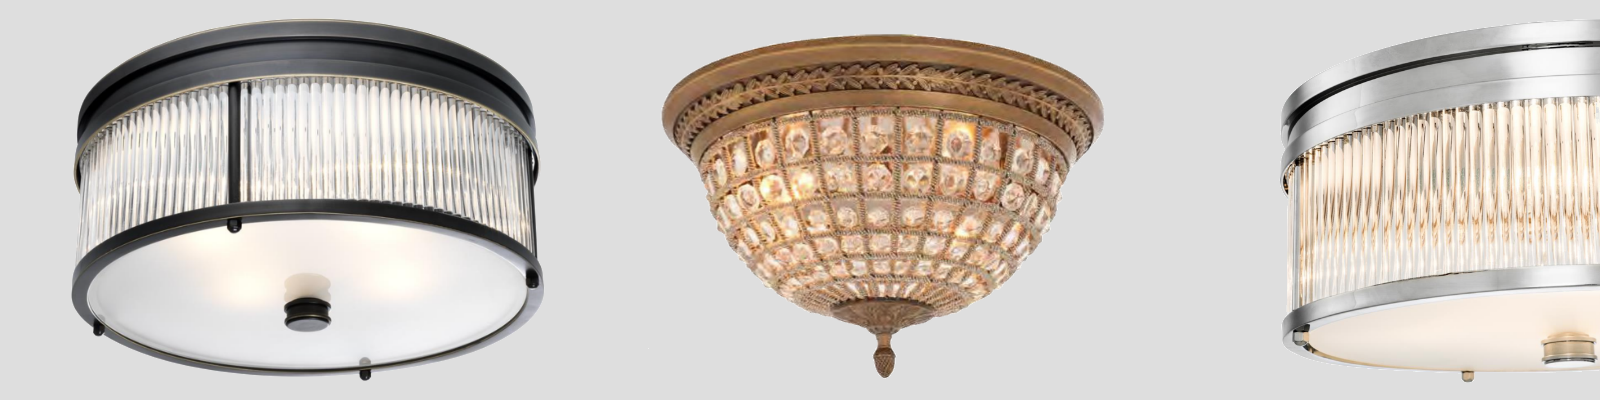 Ceiling Lamps | Eichholtz Lighting | OROA - Modernized Classic Furniture Online